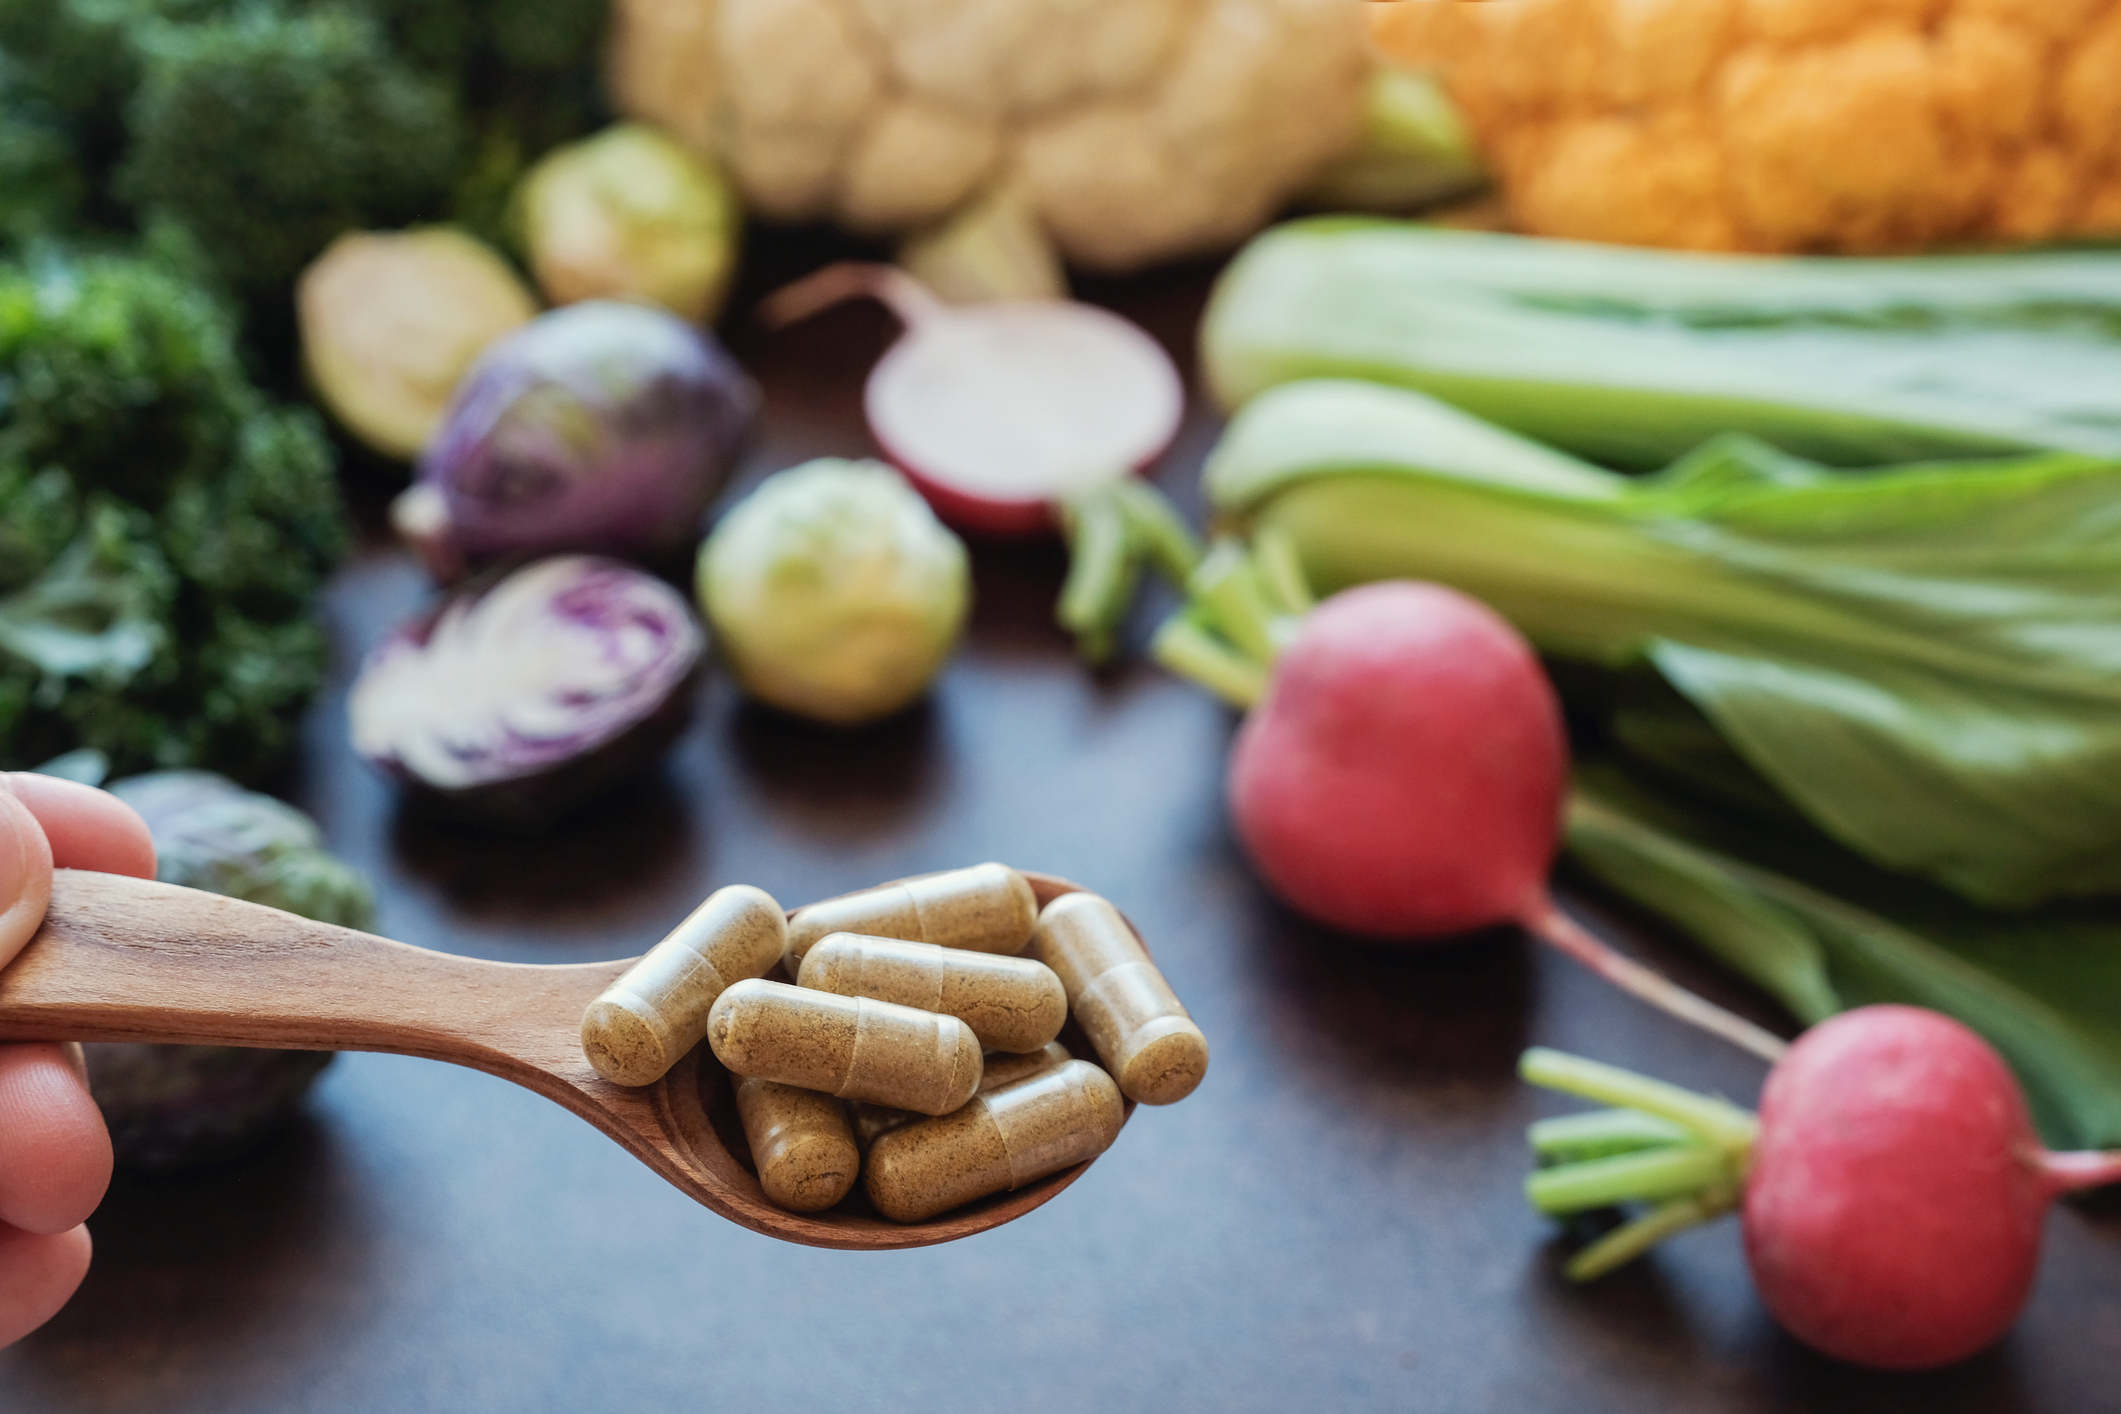 The Truth About Supplements: 5 Things You Should Know - Penn Medicine